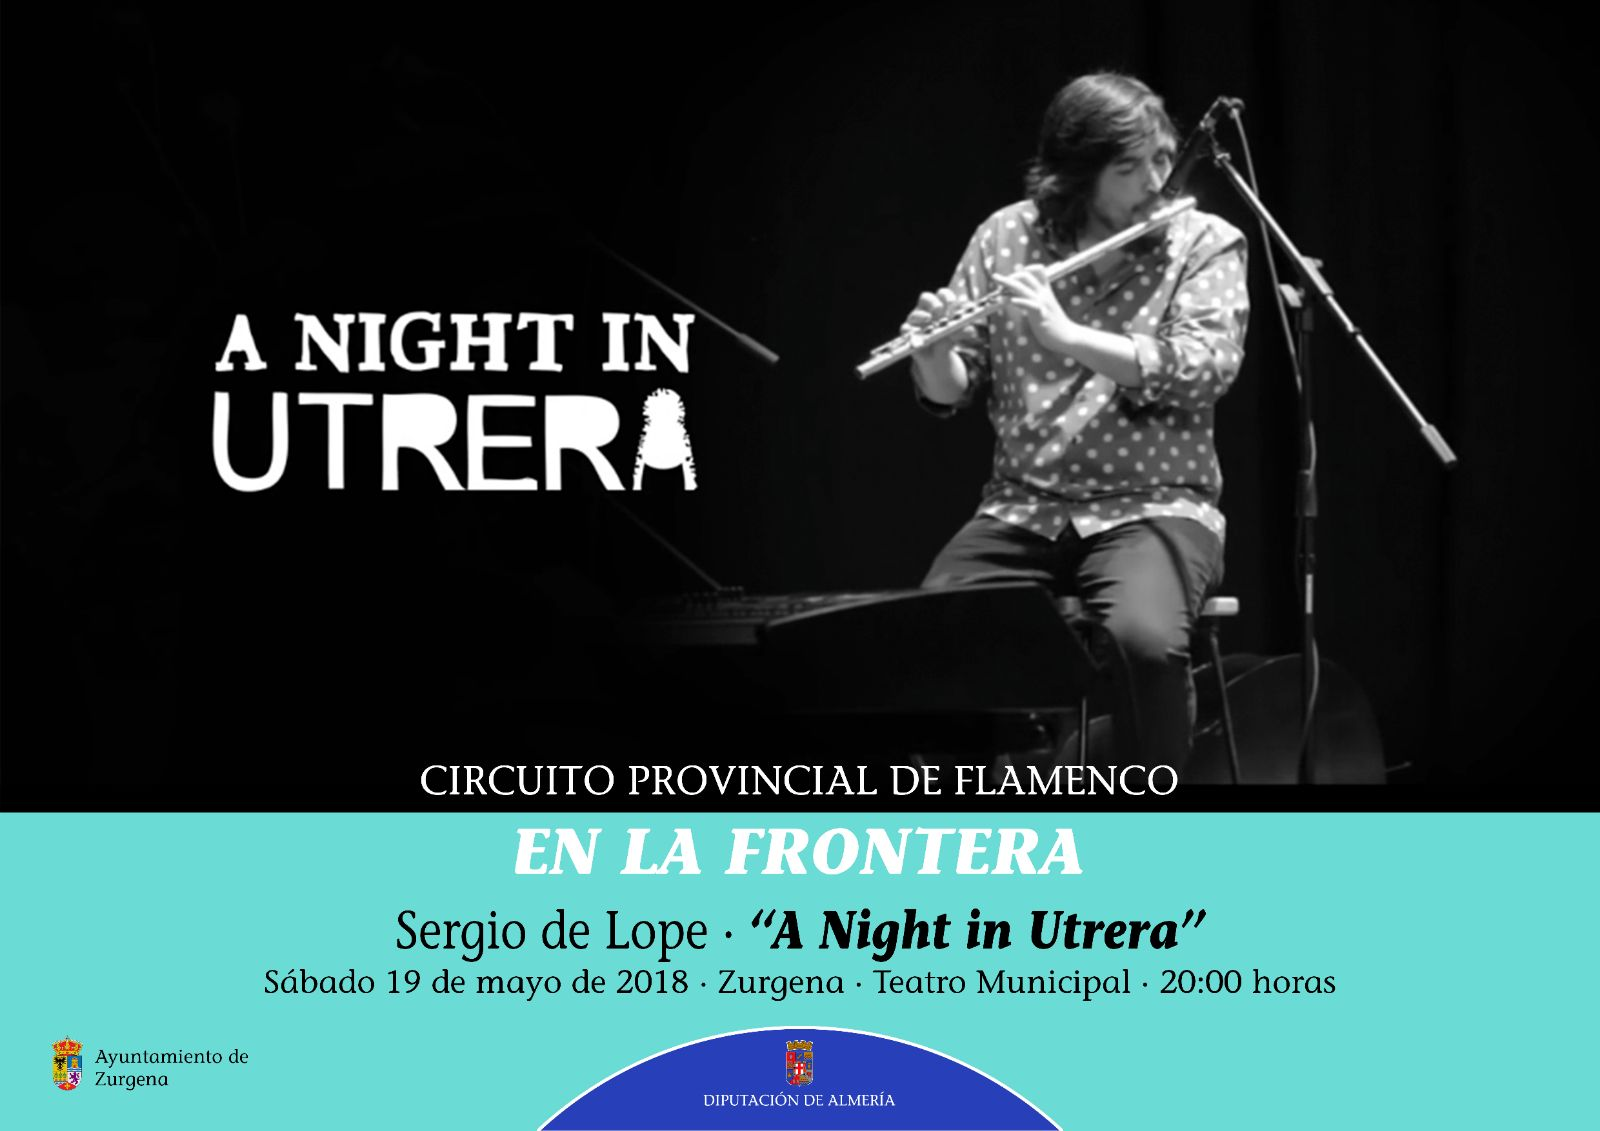 Noche de flamenco: Sergio de Lope presenta 'A night in Utrera'